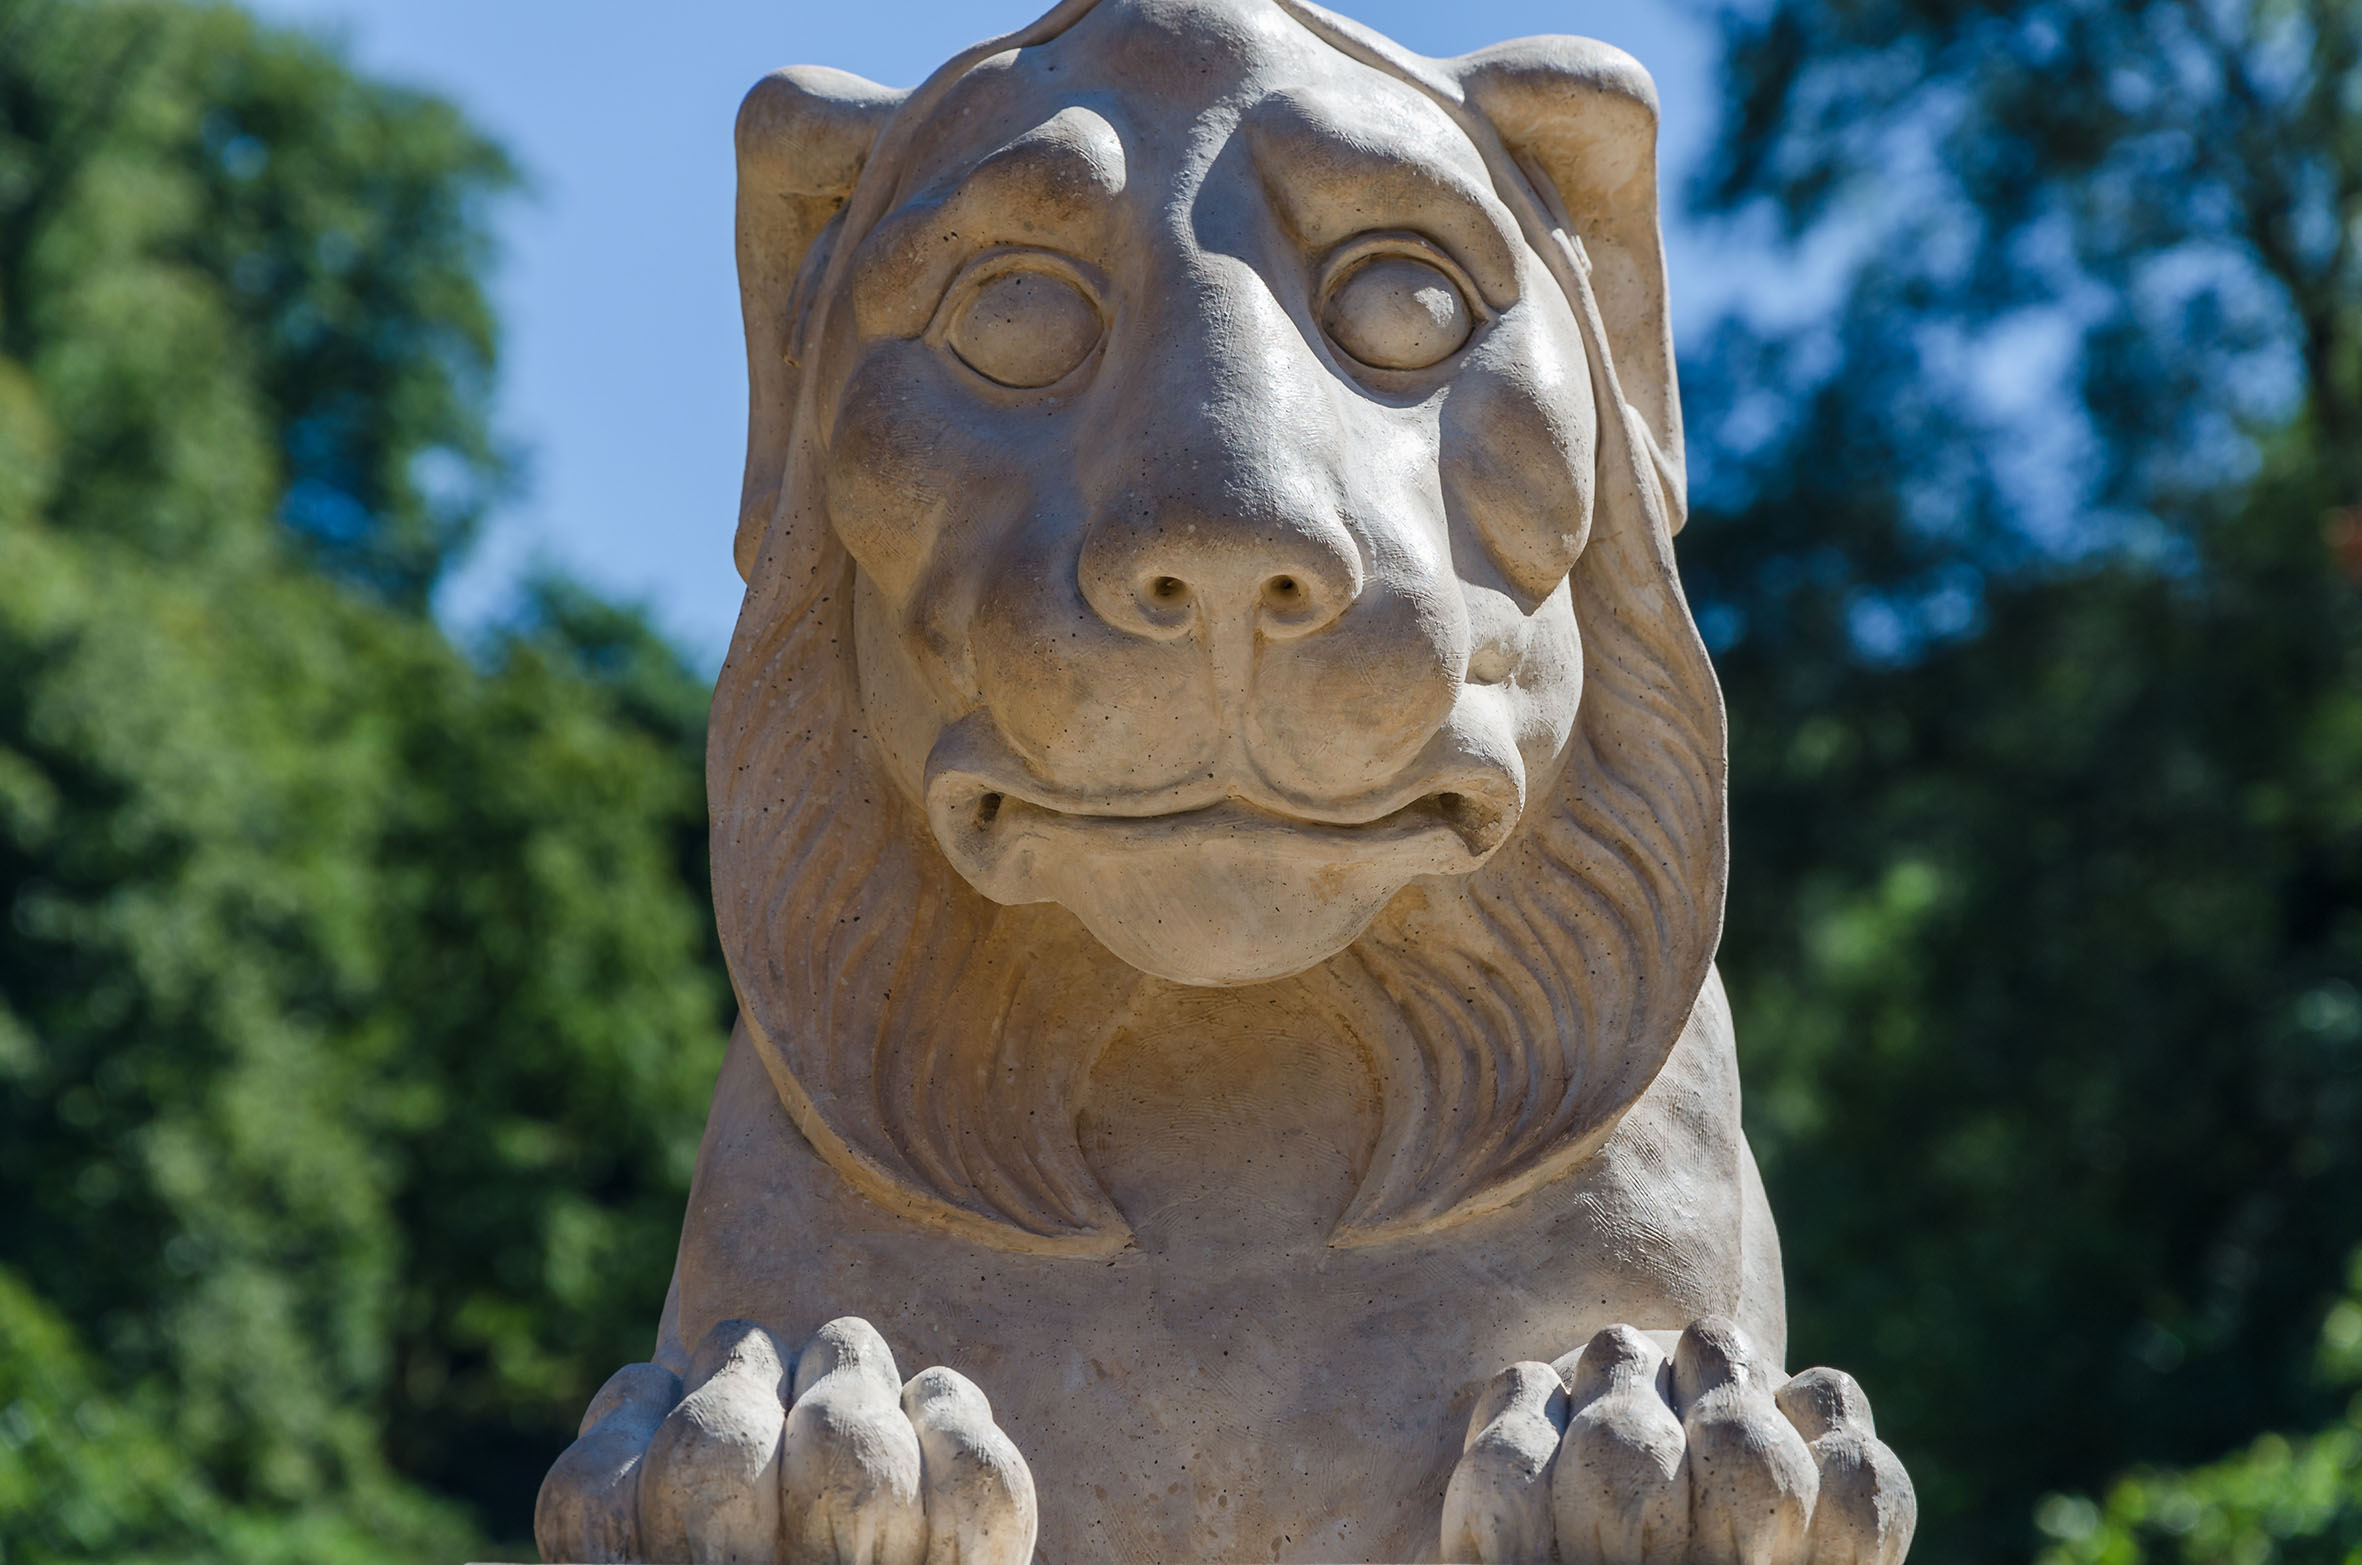 Coady the lion statue at Deepdene